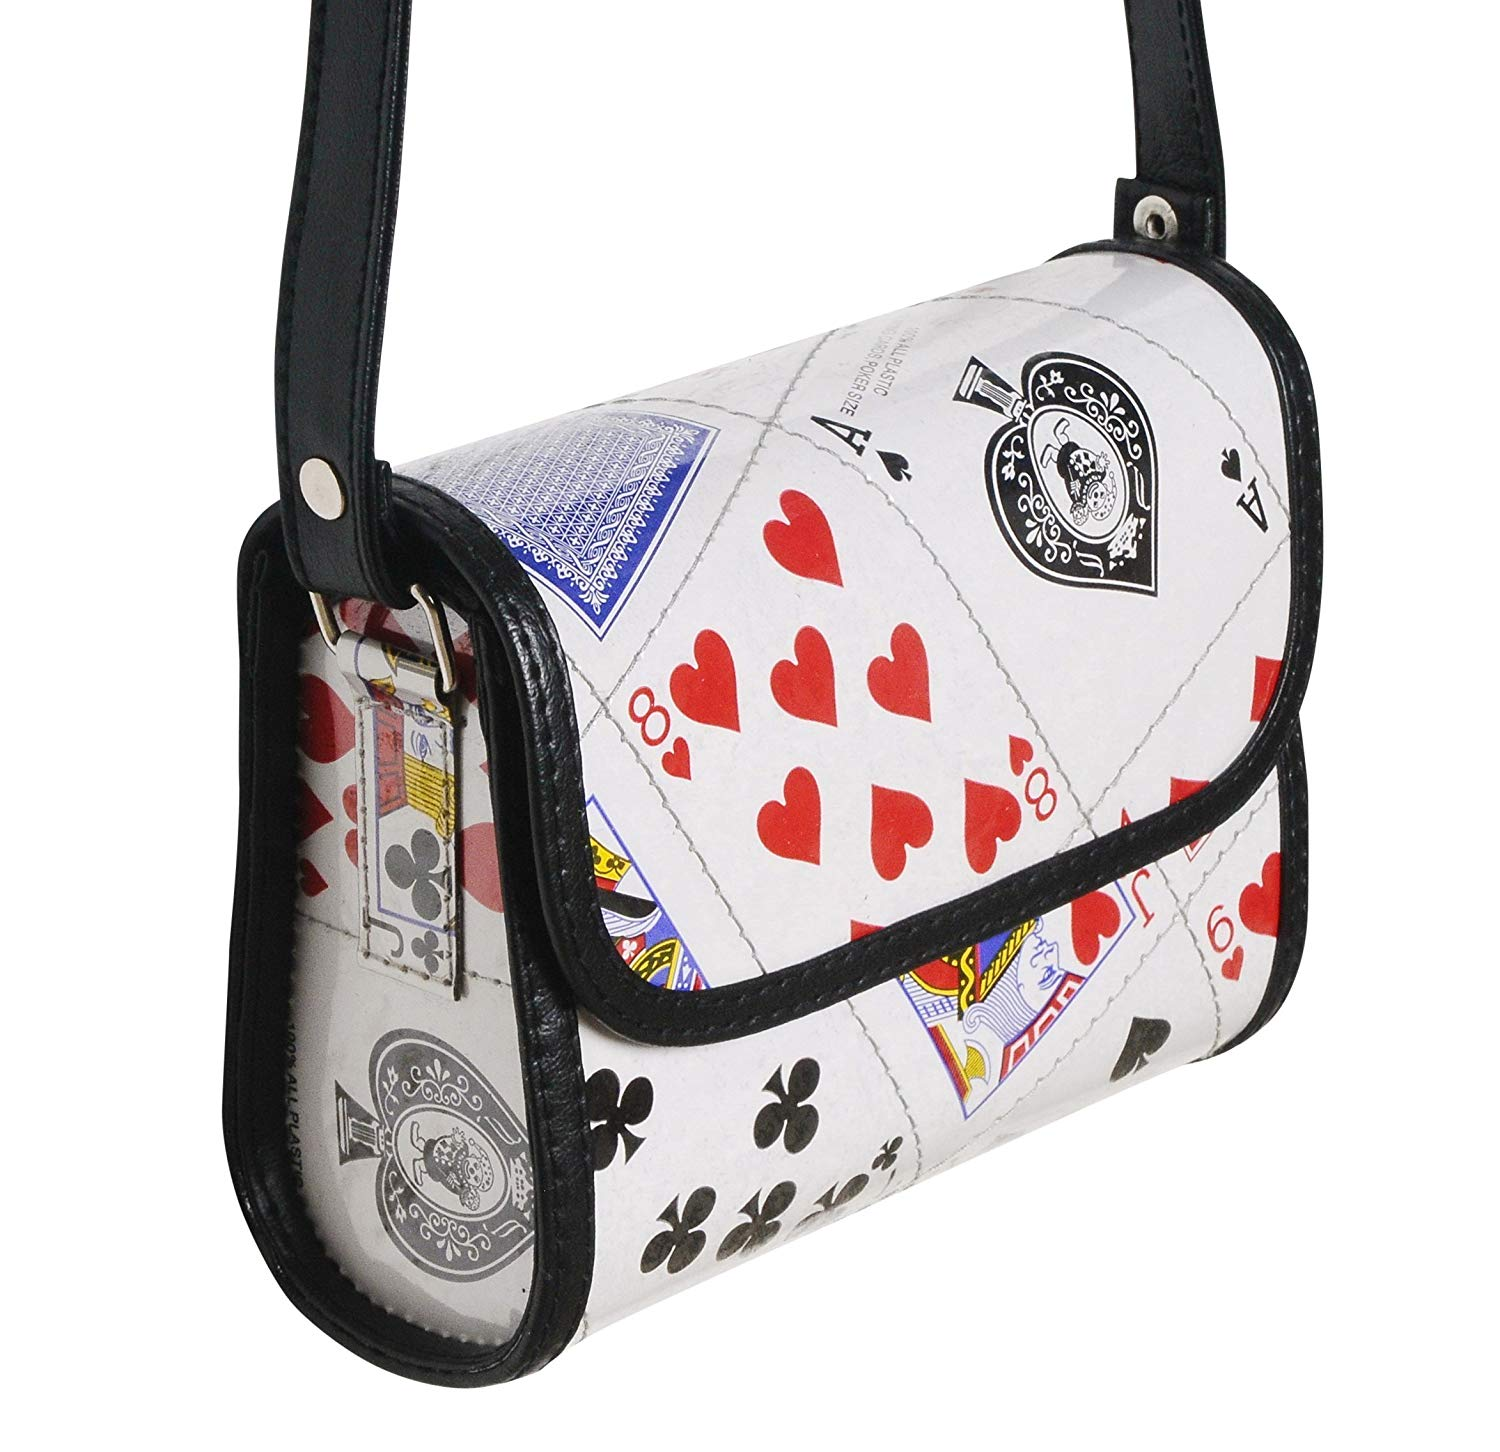 Small crossbody made from playing cards - FREE SHIPPING, upcycled style eco friendly vegan recycled of reclaimed materials repurposed bag gift gifts for poker bridge player play card hearts and clubs